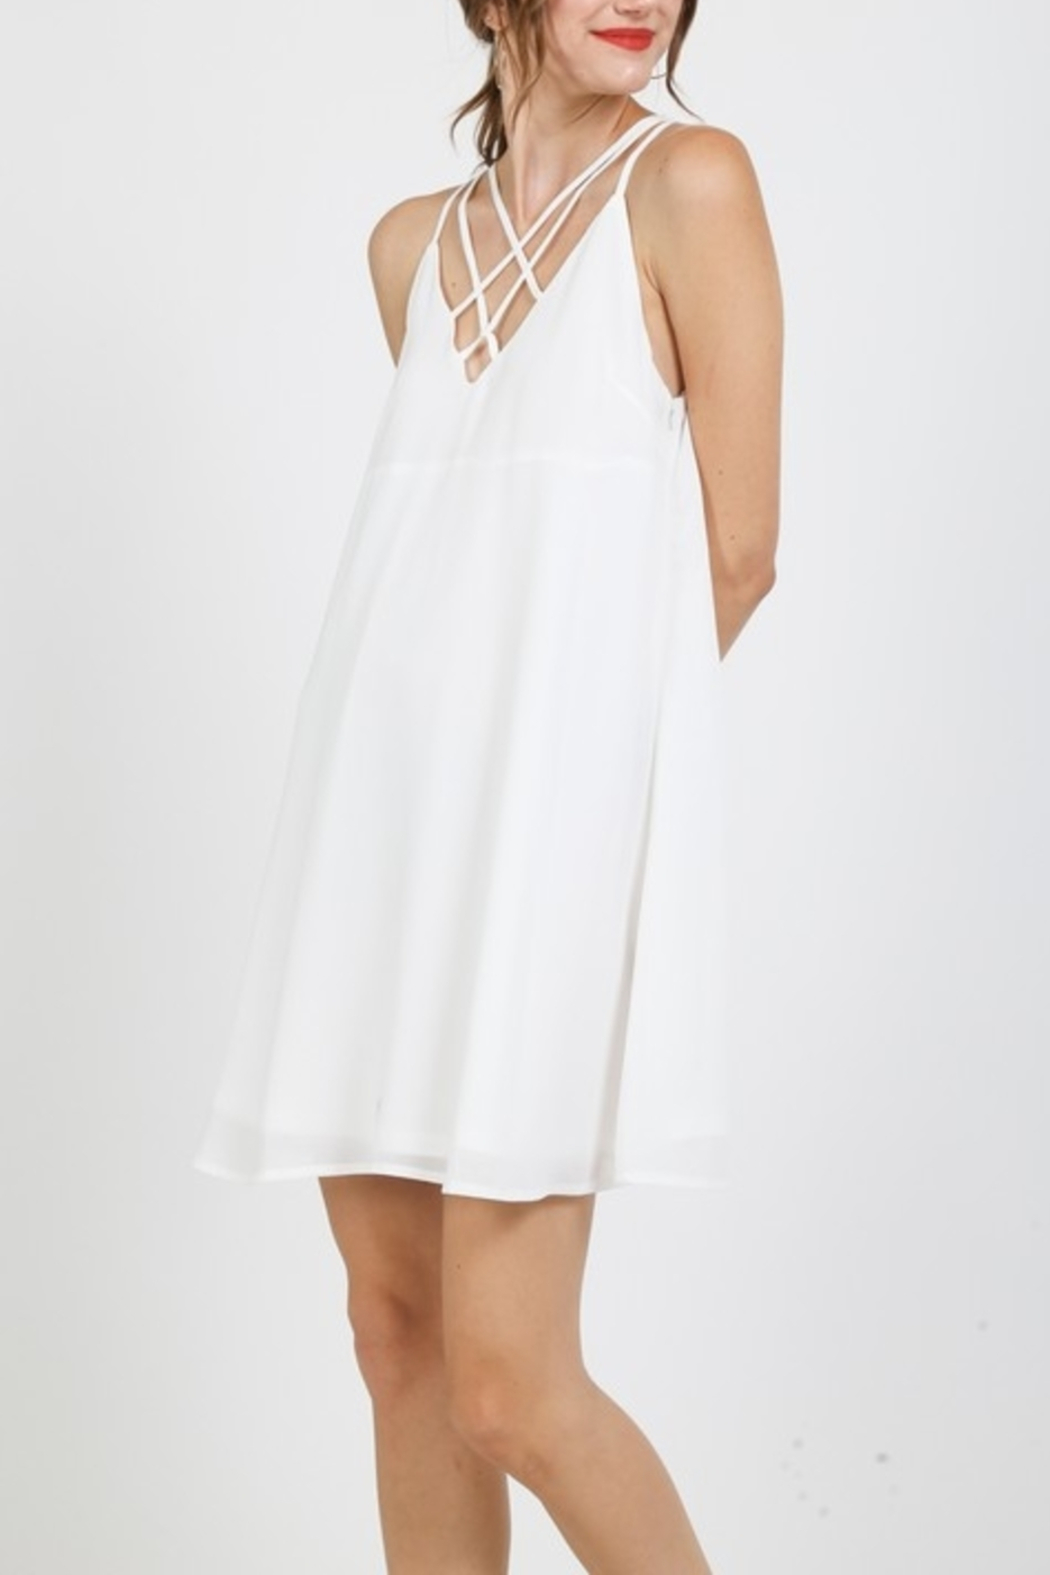 Very J Pretty Please dress - Front Full Image